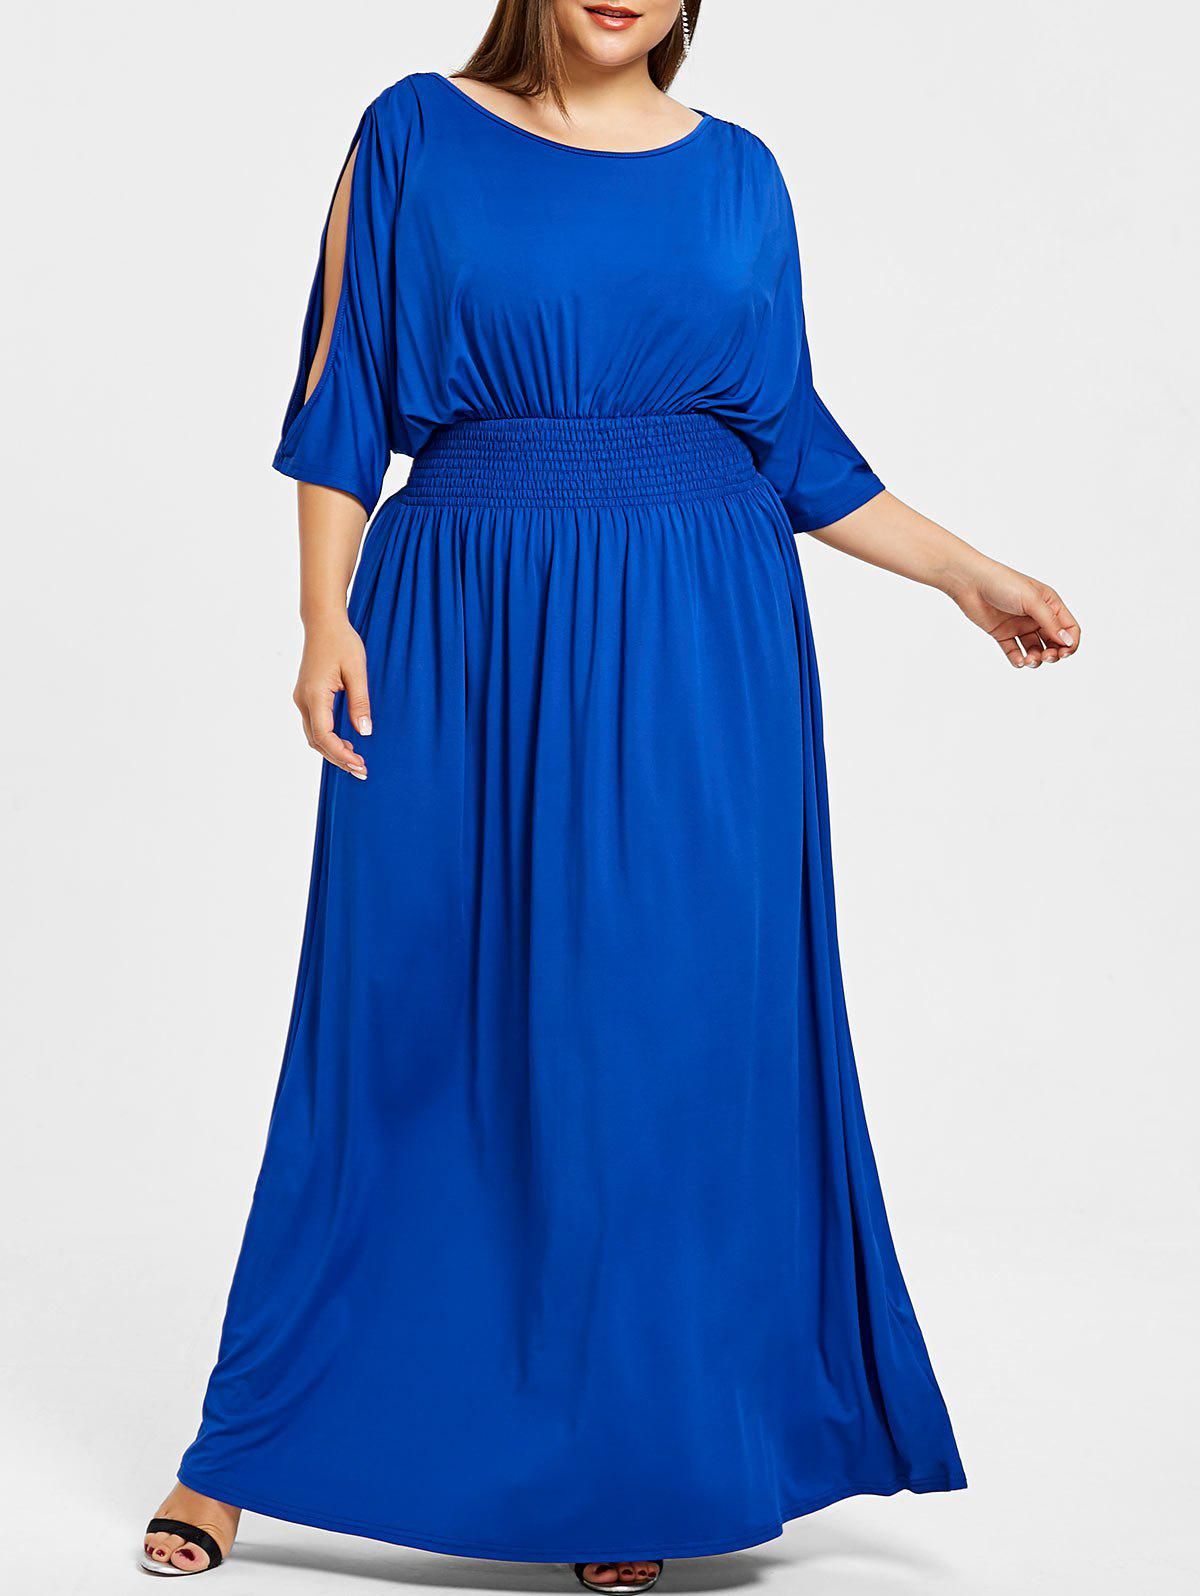 Slit Sleeve Plus Size Elastic Waist Maxi Dress - BLUE 2X